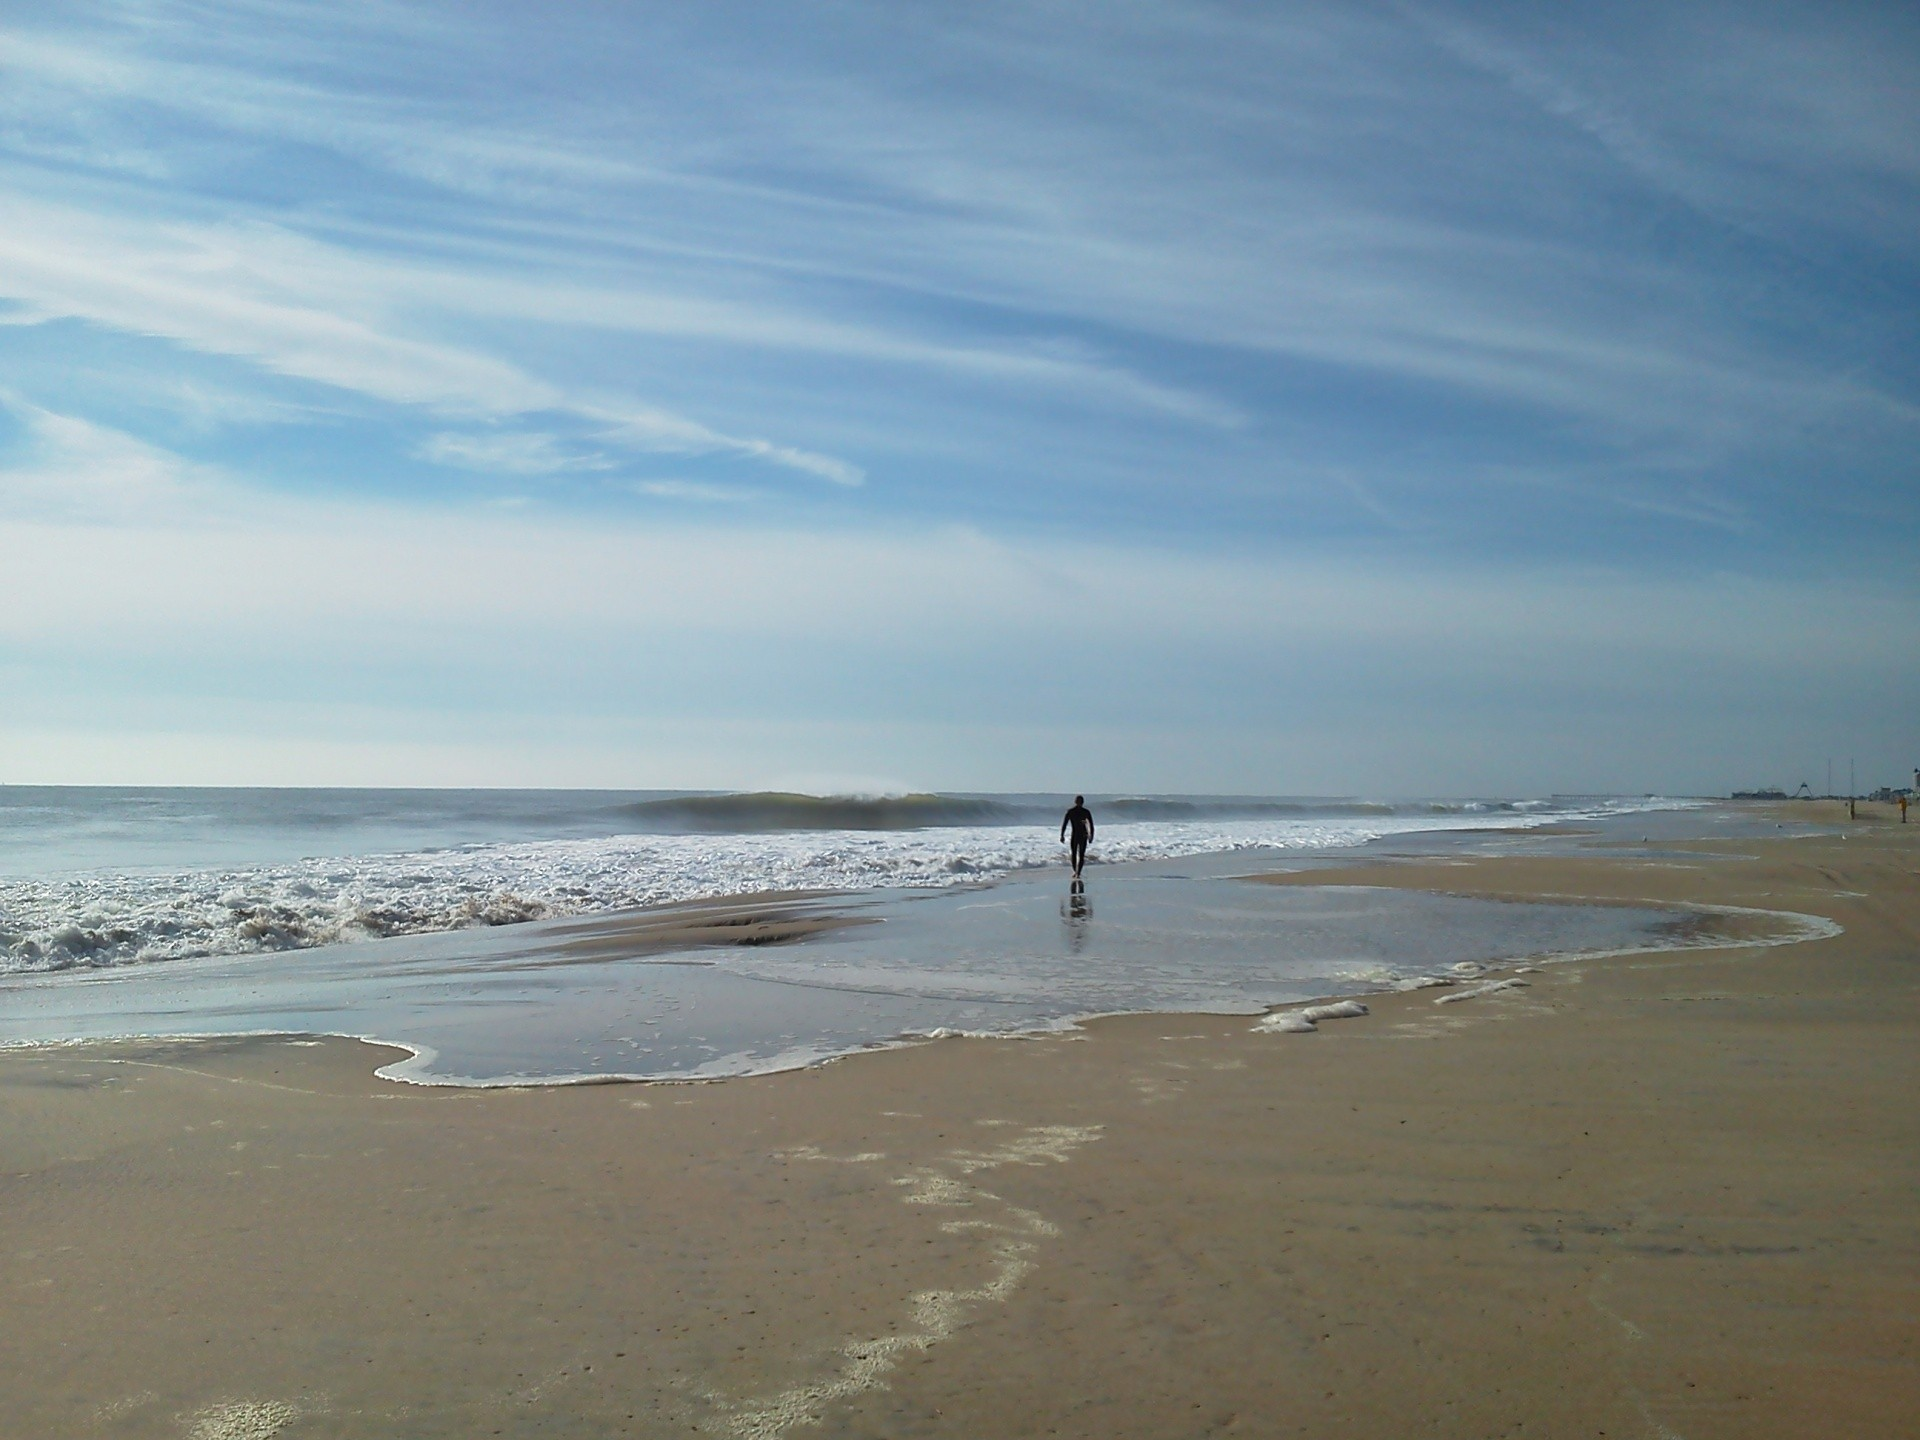 Breal's photo of Ocean City, MD